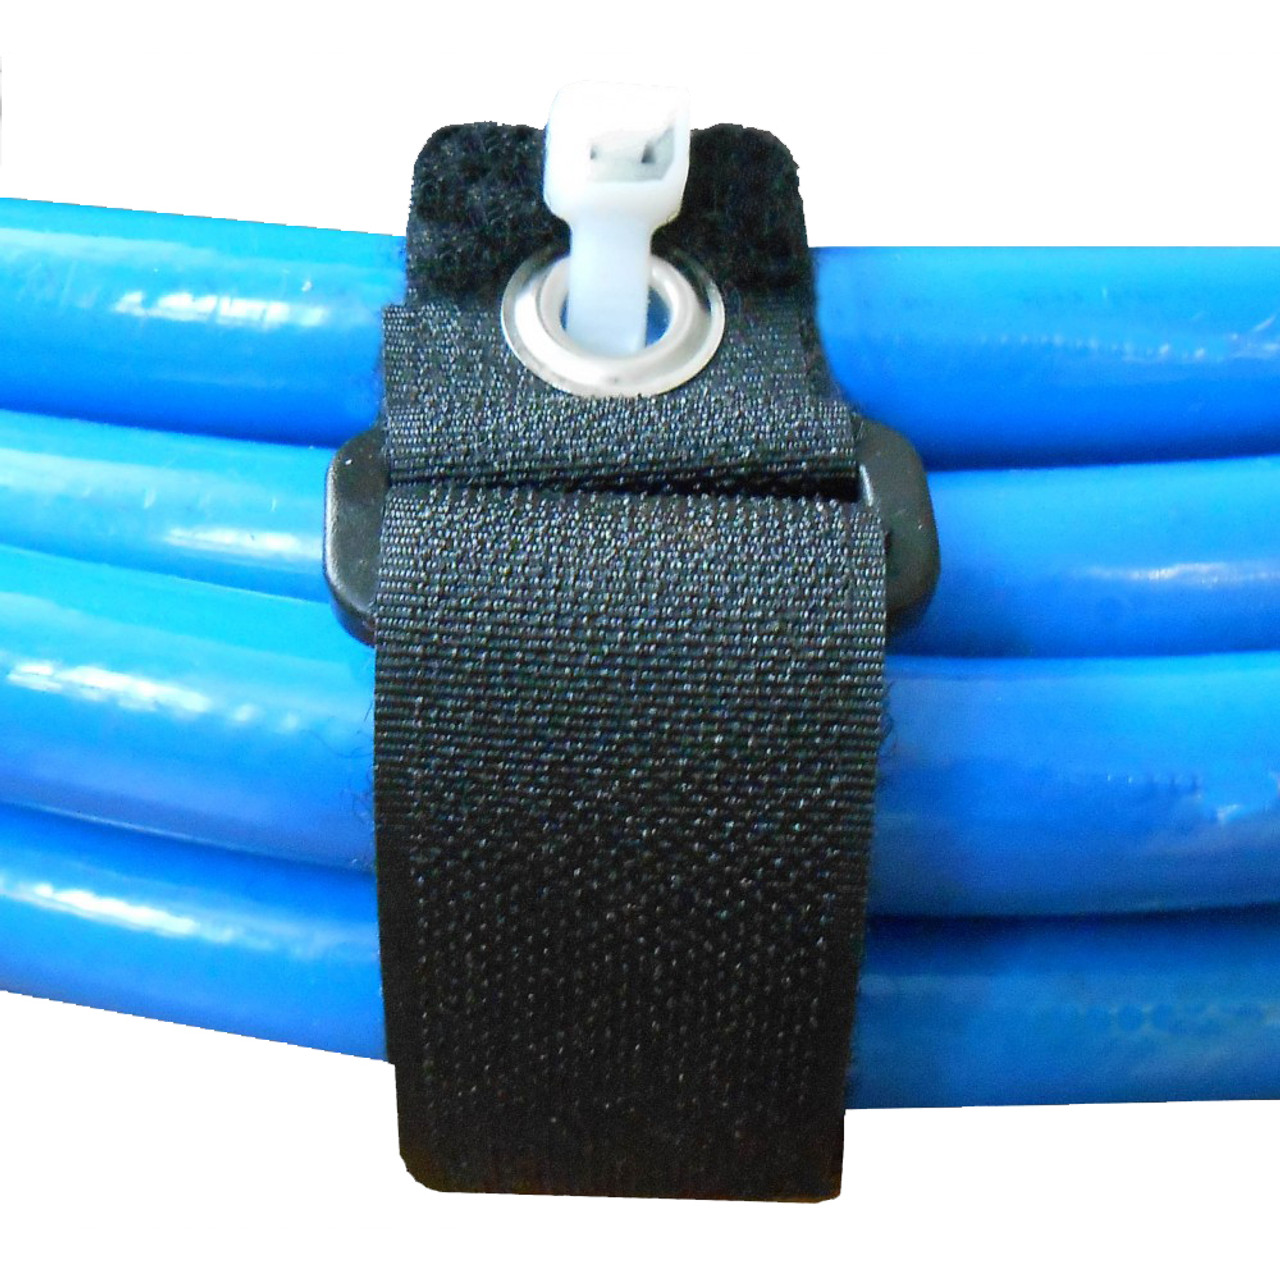 Secure Buckle Up Strap Application / Velcro Straps - Bundling Straps - Velcro Tie - Velcro Strap